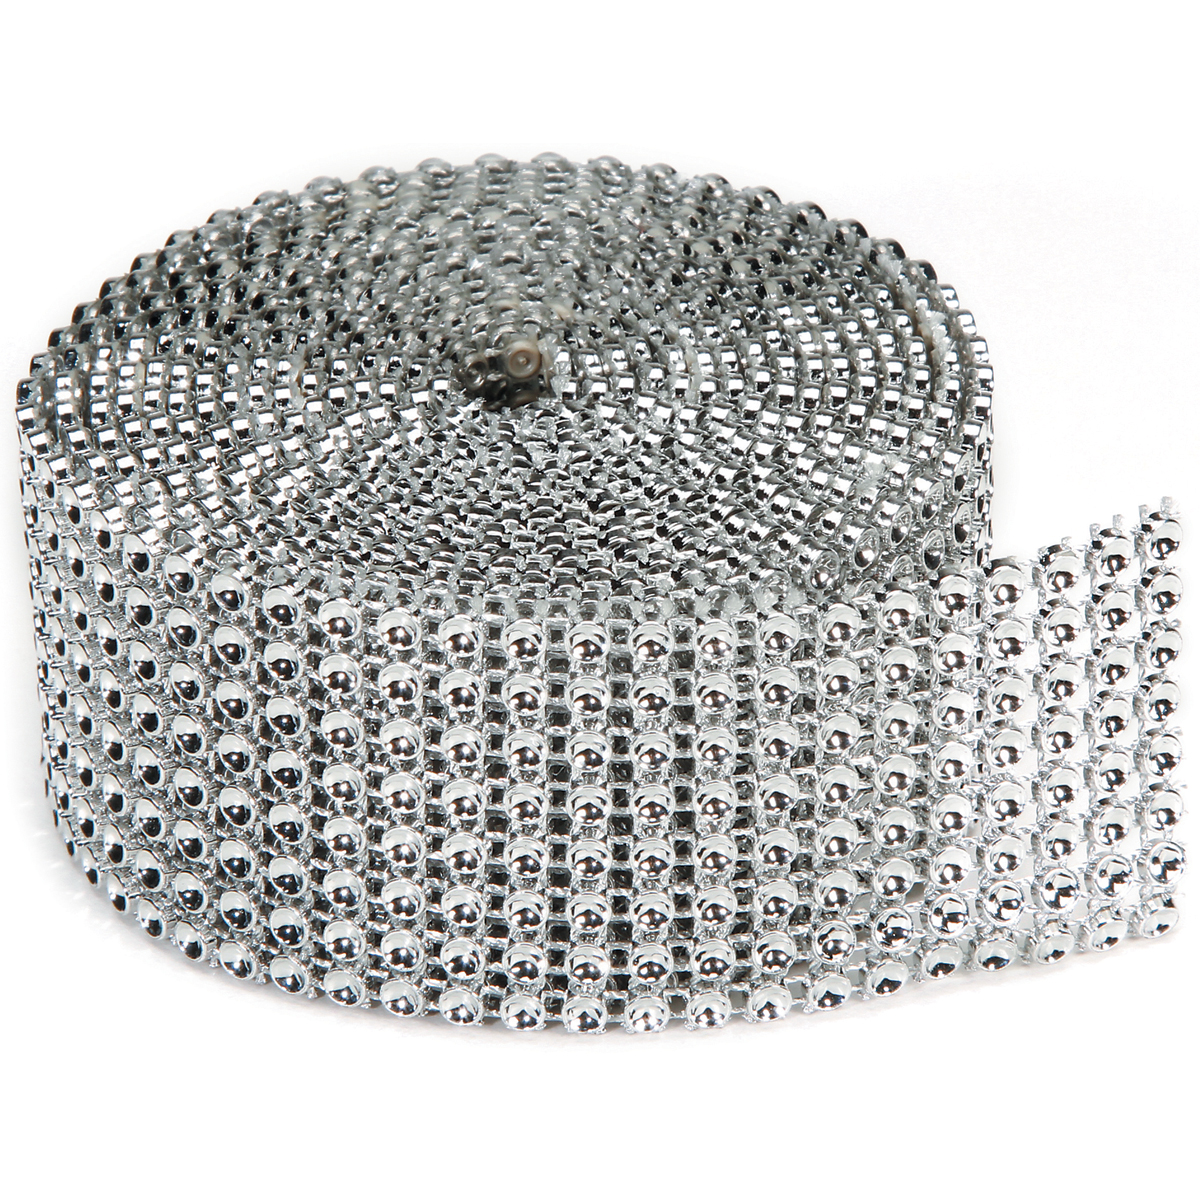 1-row Darice BLING ON A ROLL SILVER Mesh Ribbon 3mm x 10 Yards